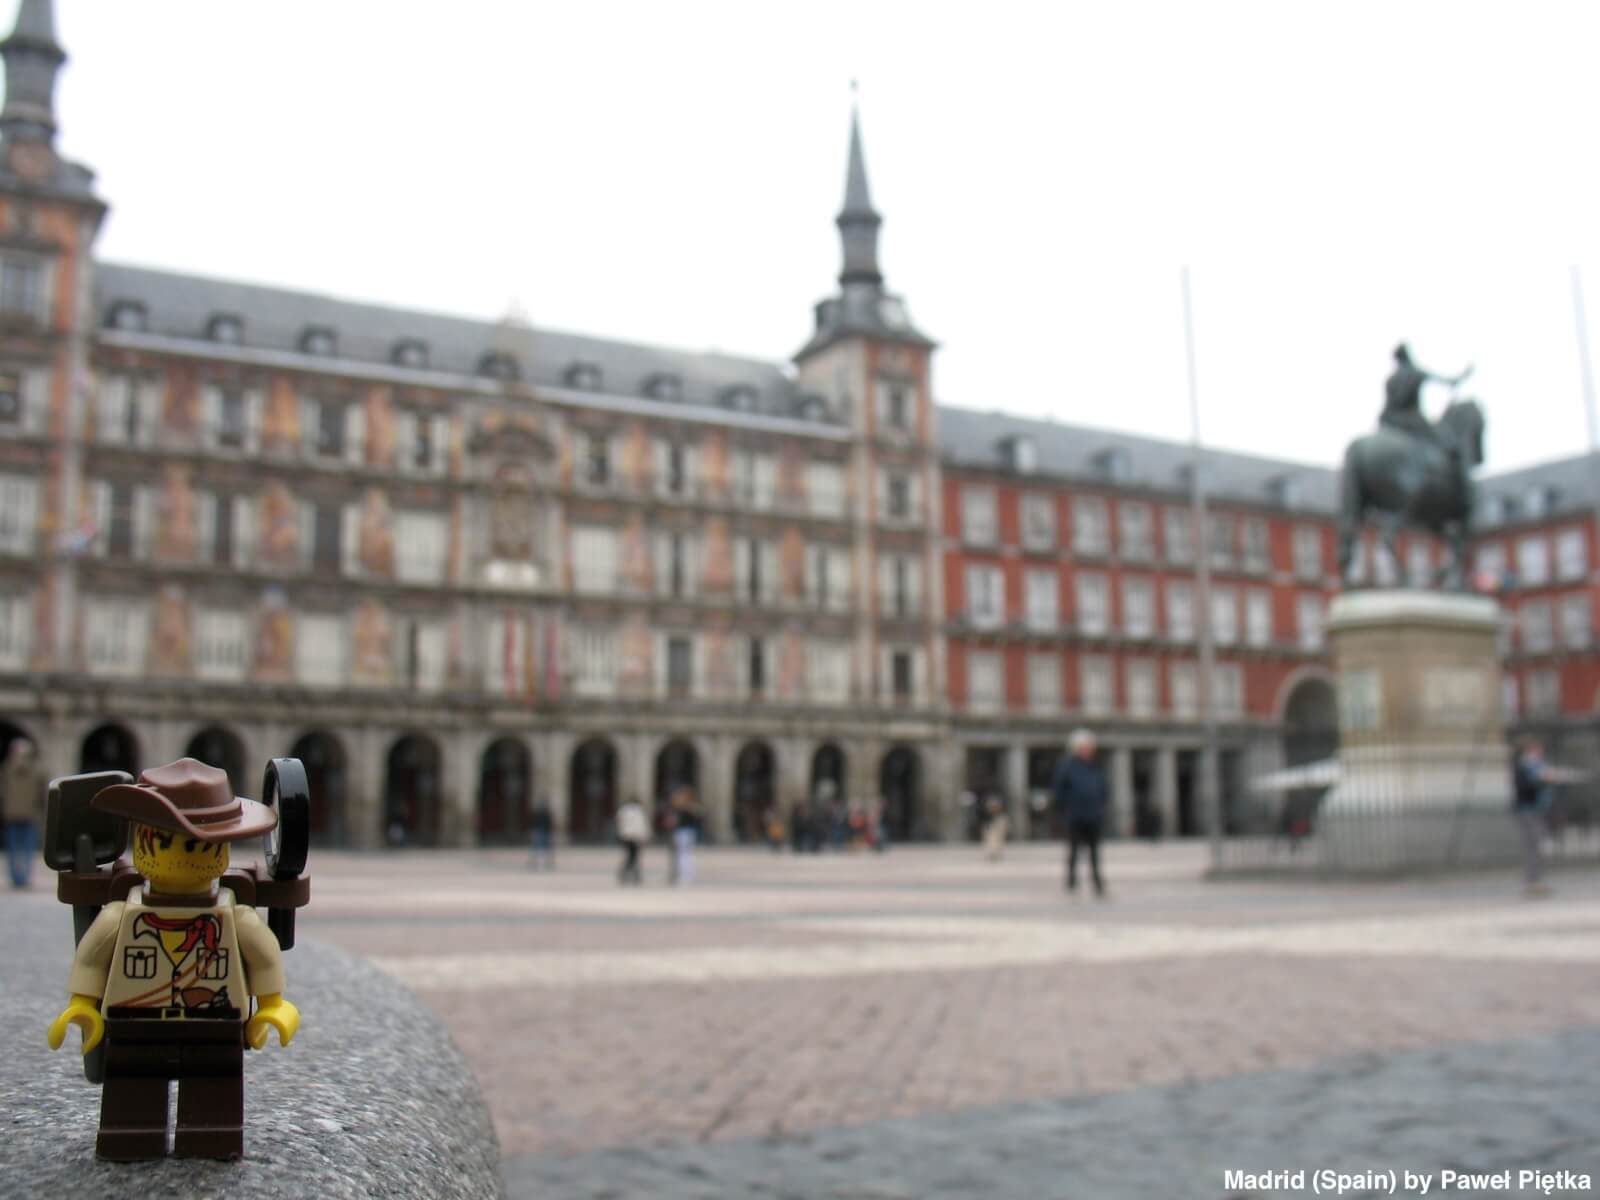 Madrid (Spain) - Plaza Mayor